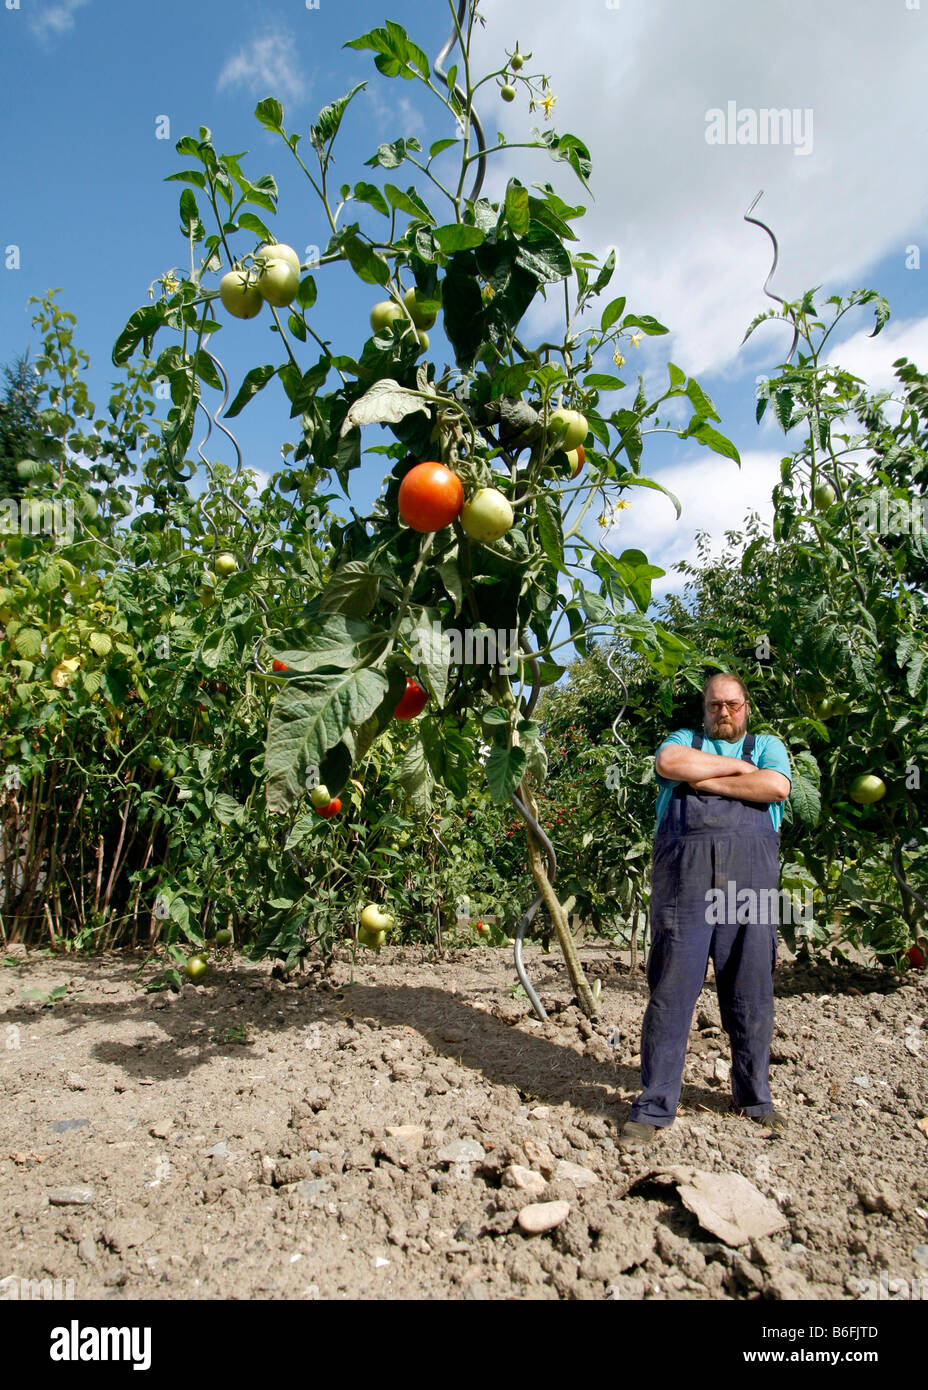 Farmer standing beside an oversized tomato plant, genetically modified food - Stock Image